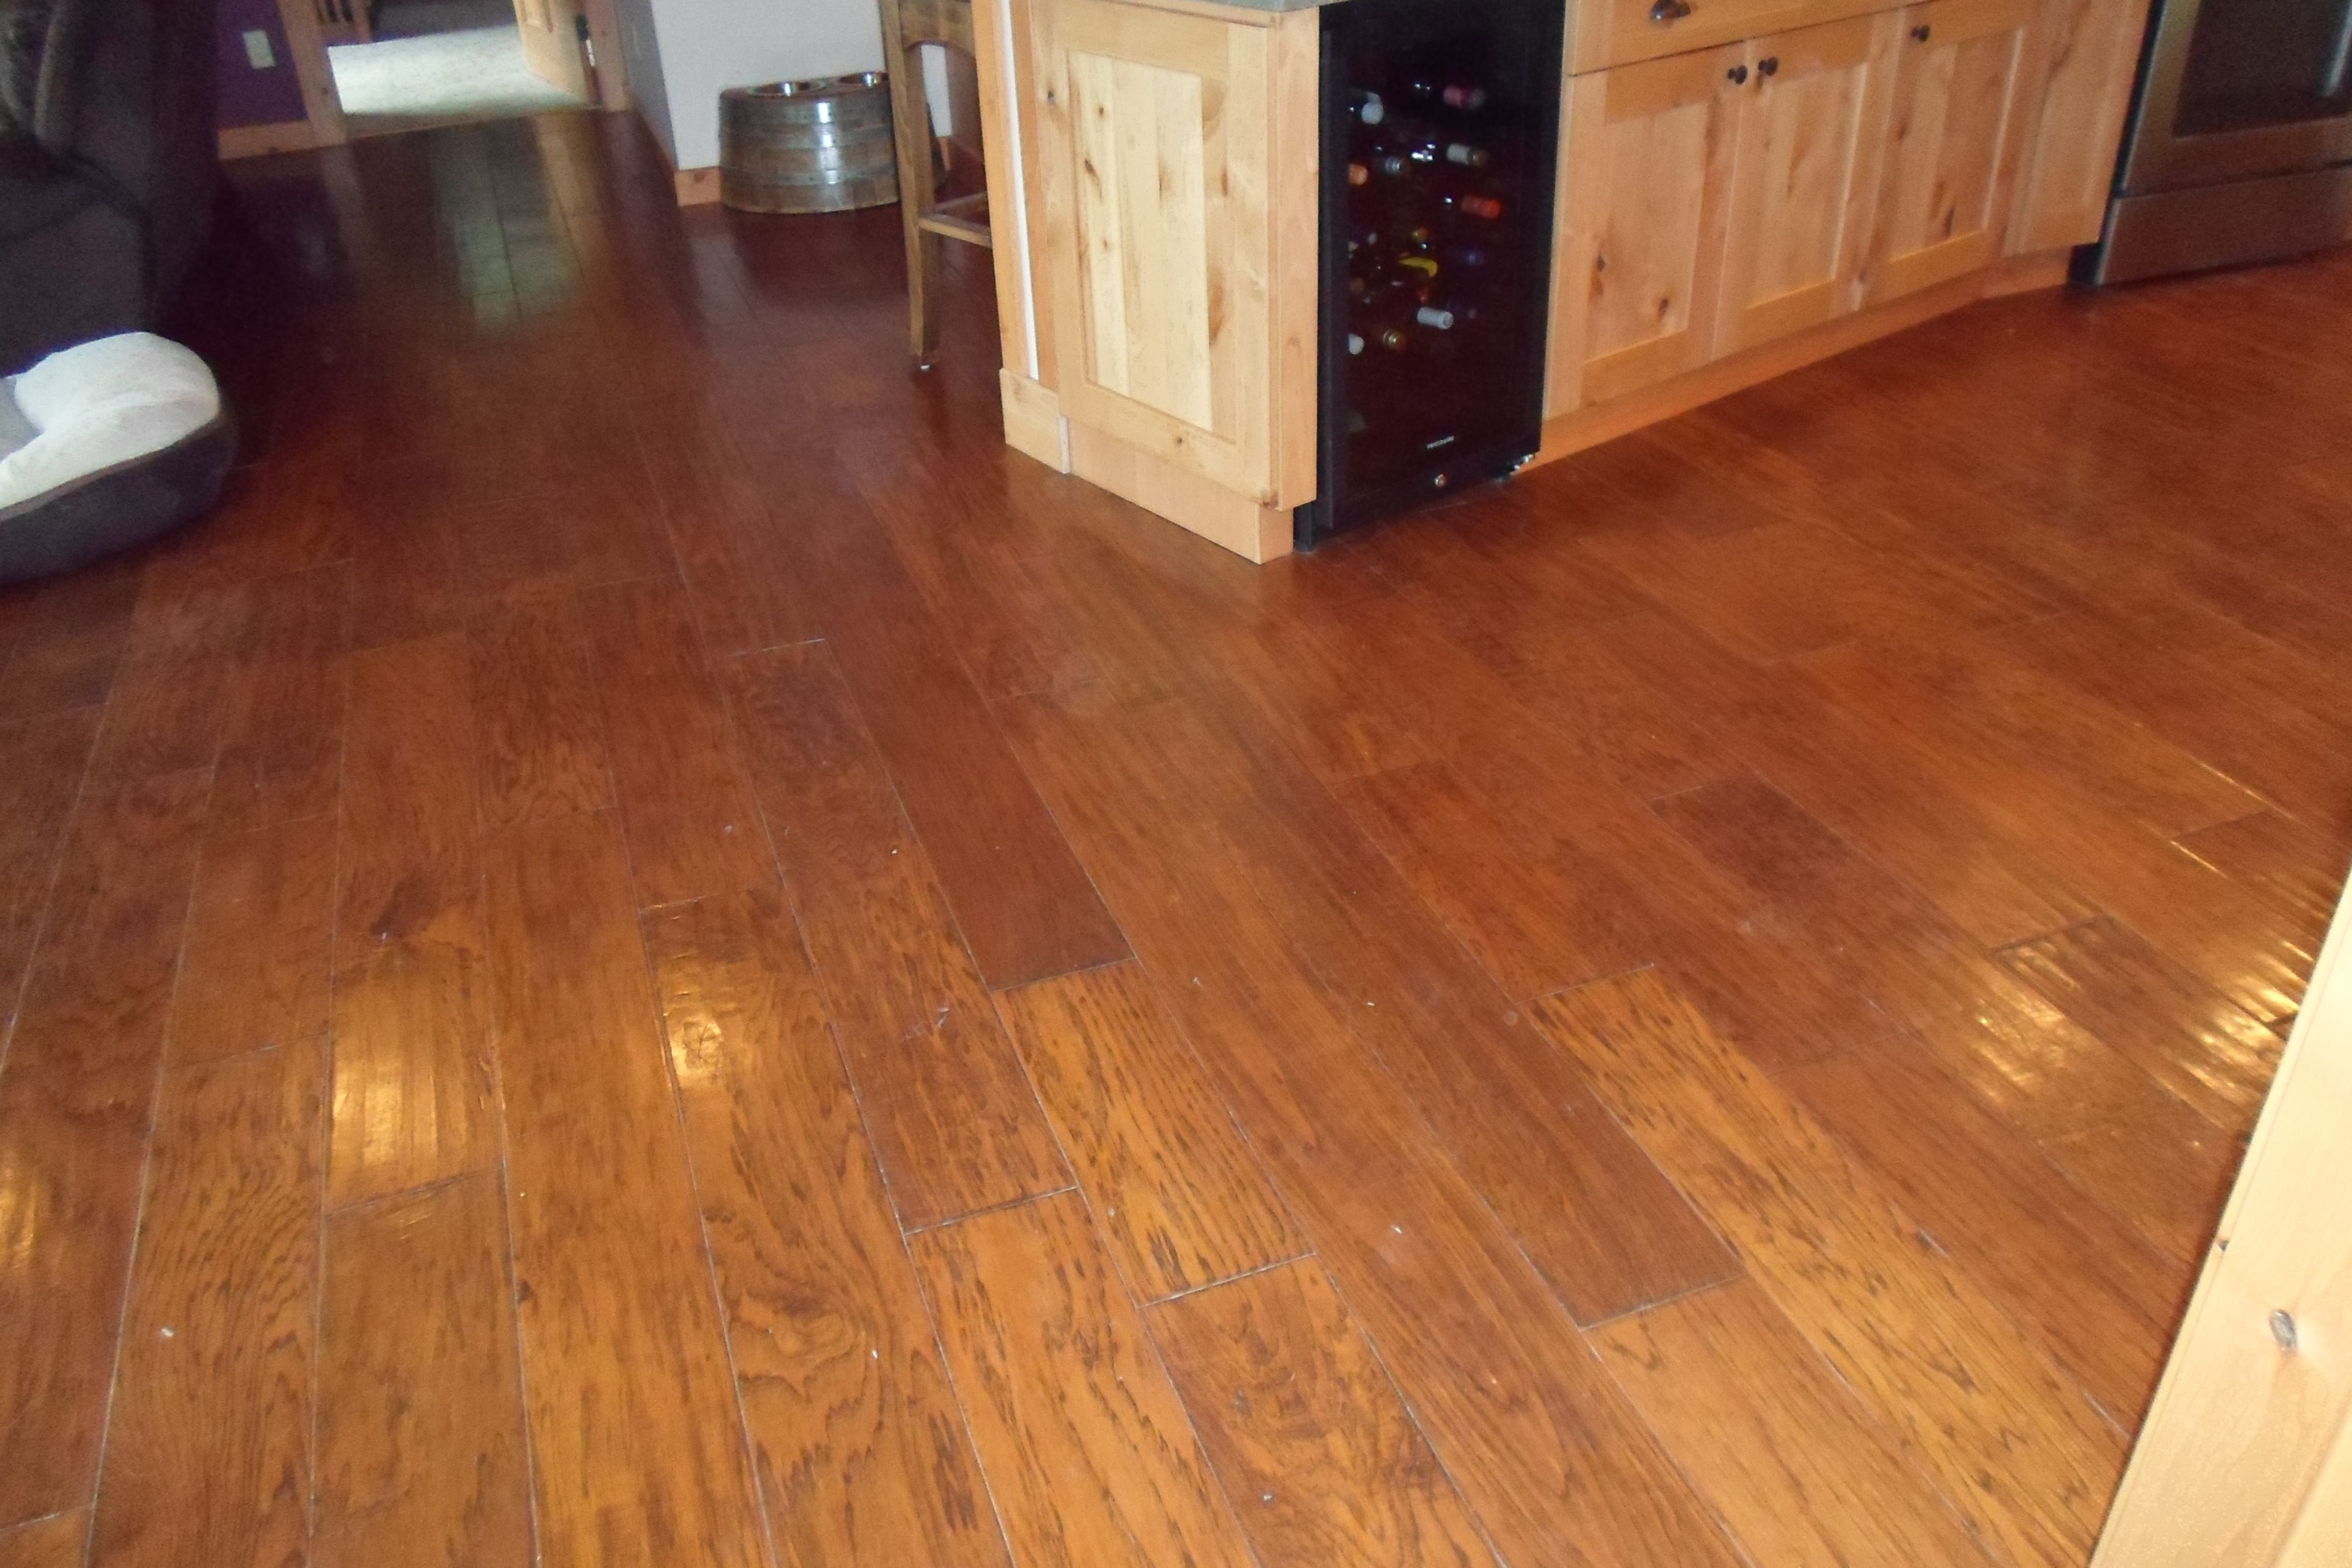 Hallmark hardwood collection chaparral color tack room hickory carpet tile hardwood laminate vinyl area rugs installation sales and service dailygadgetfo Image collections